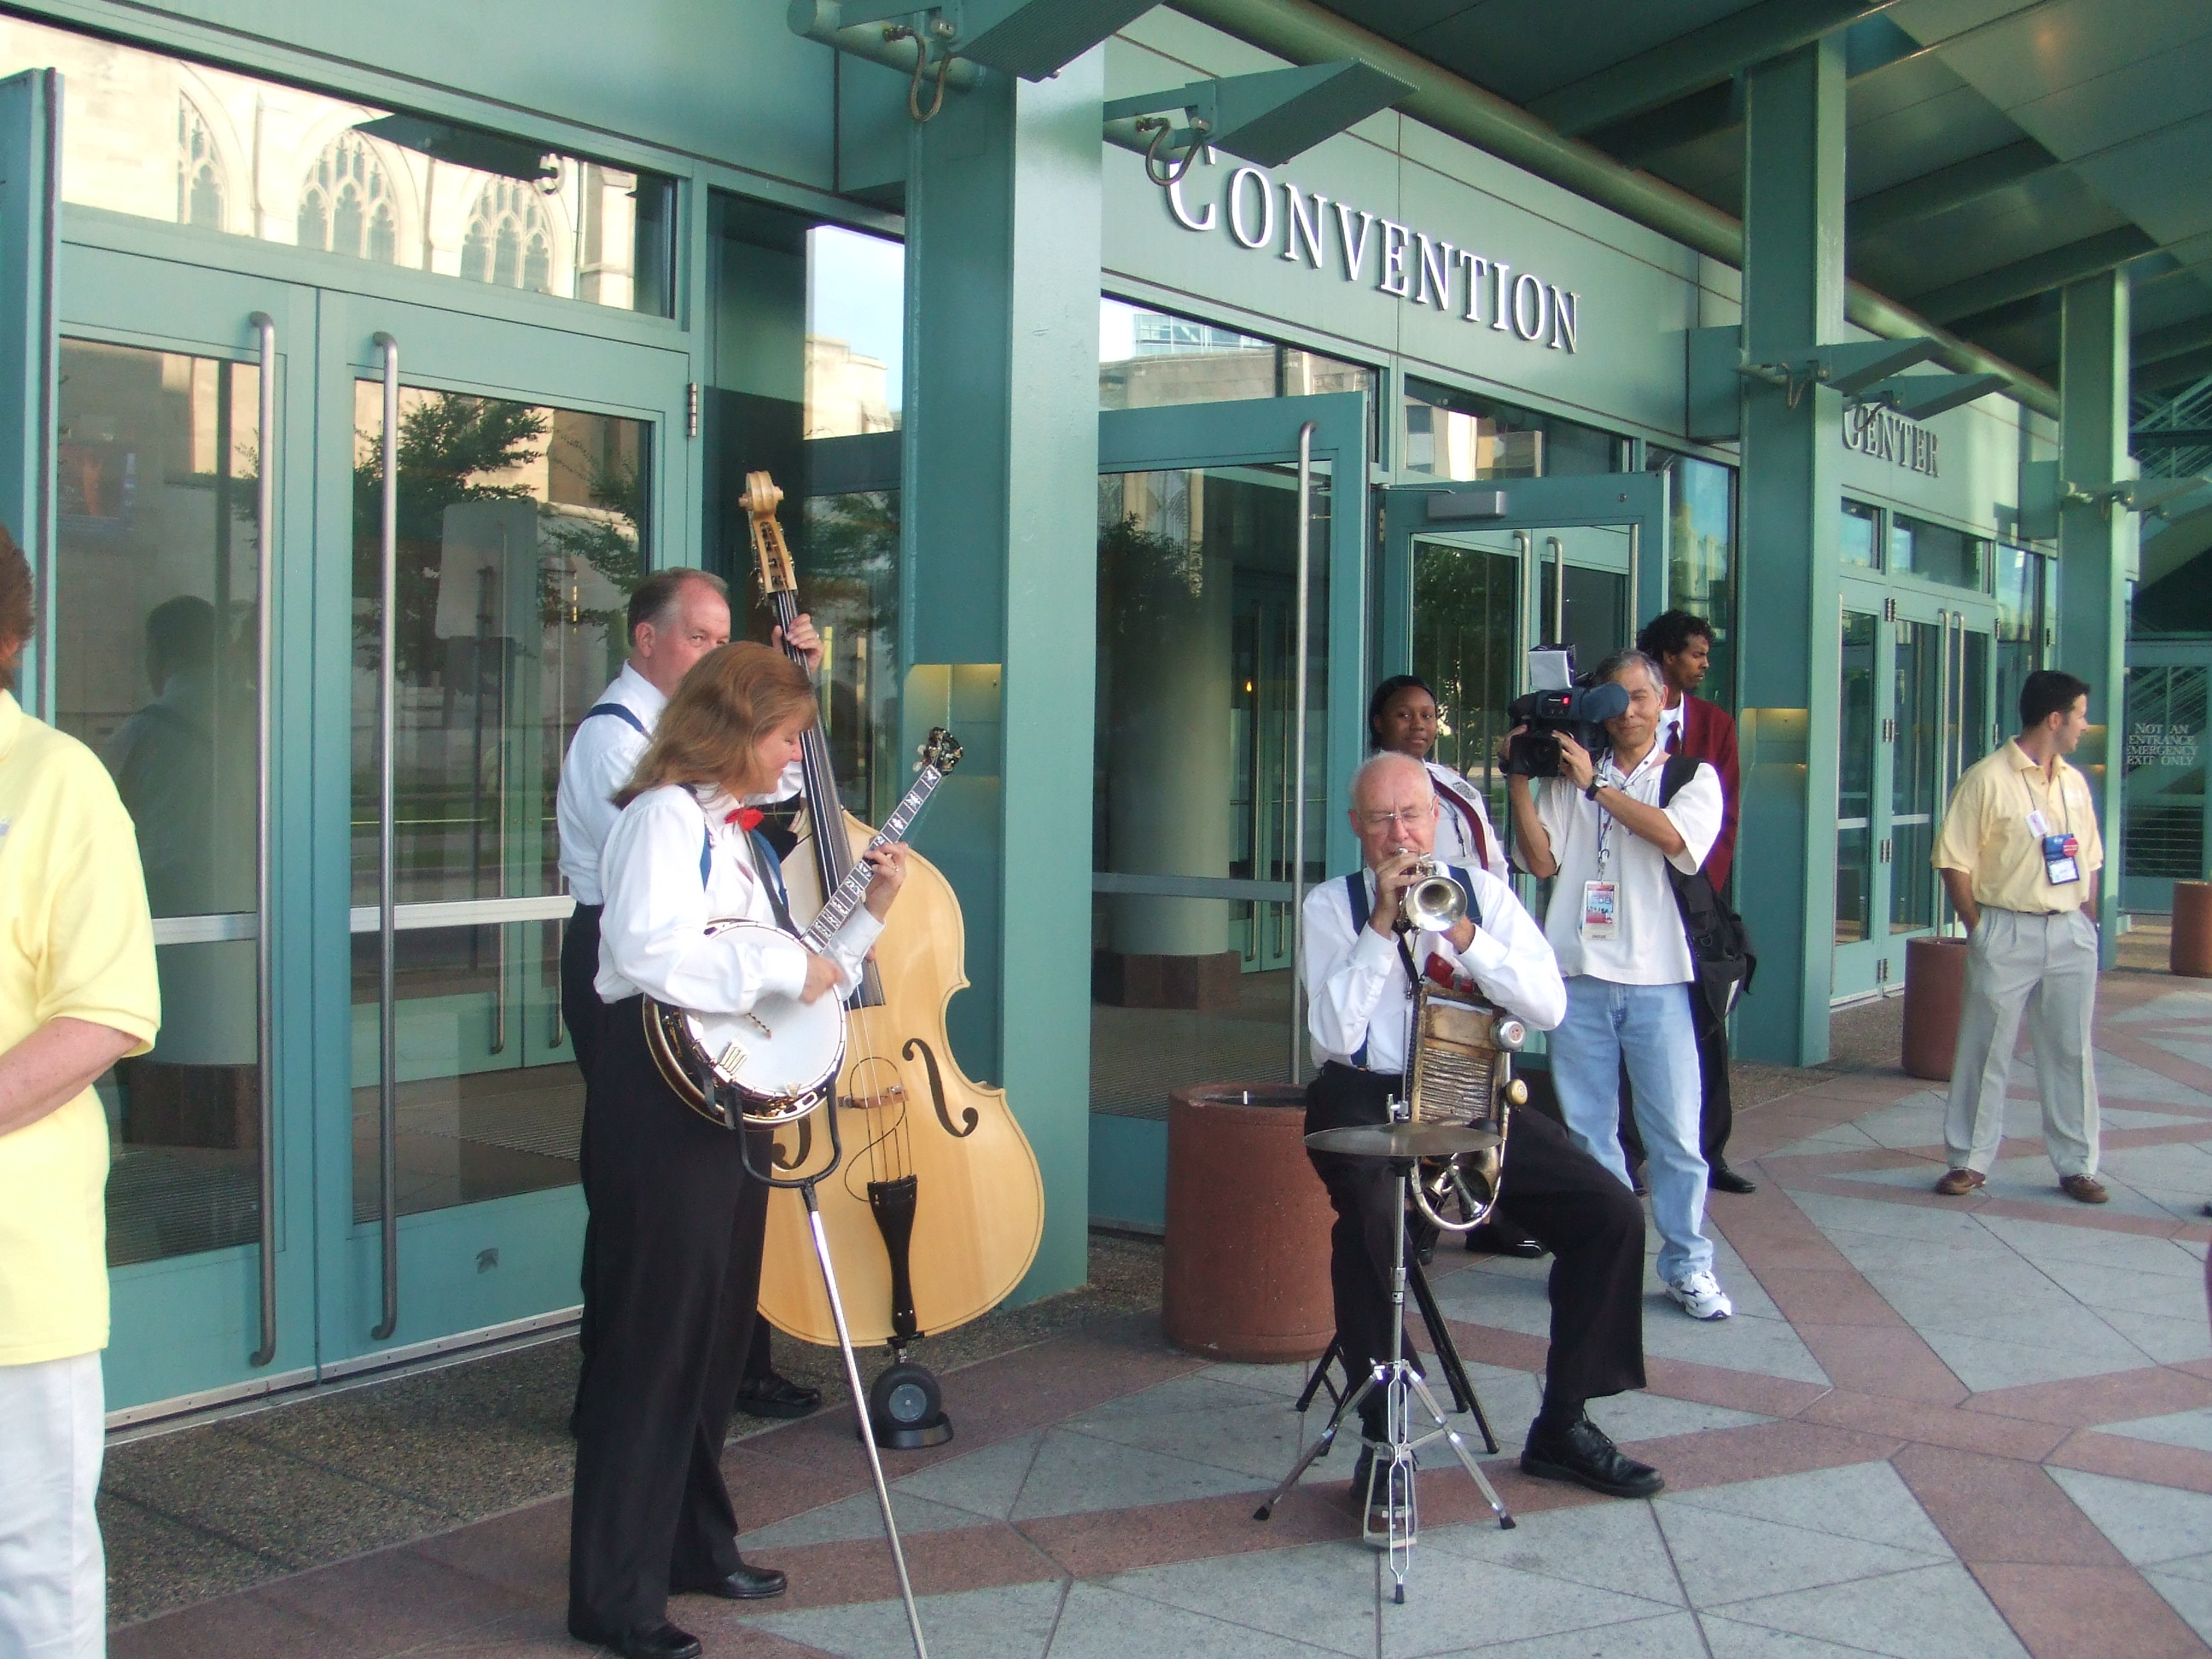 An adorable band outside of the Convention Center. So oldey timey.